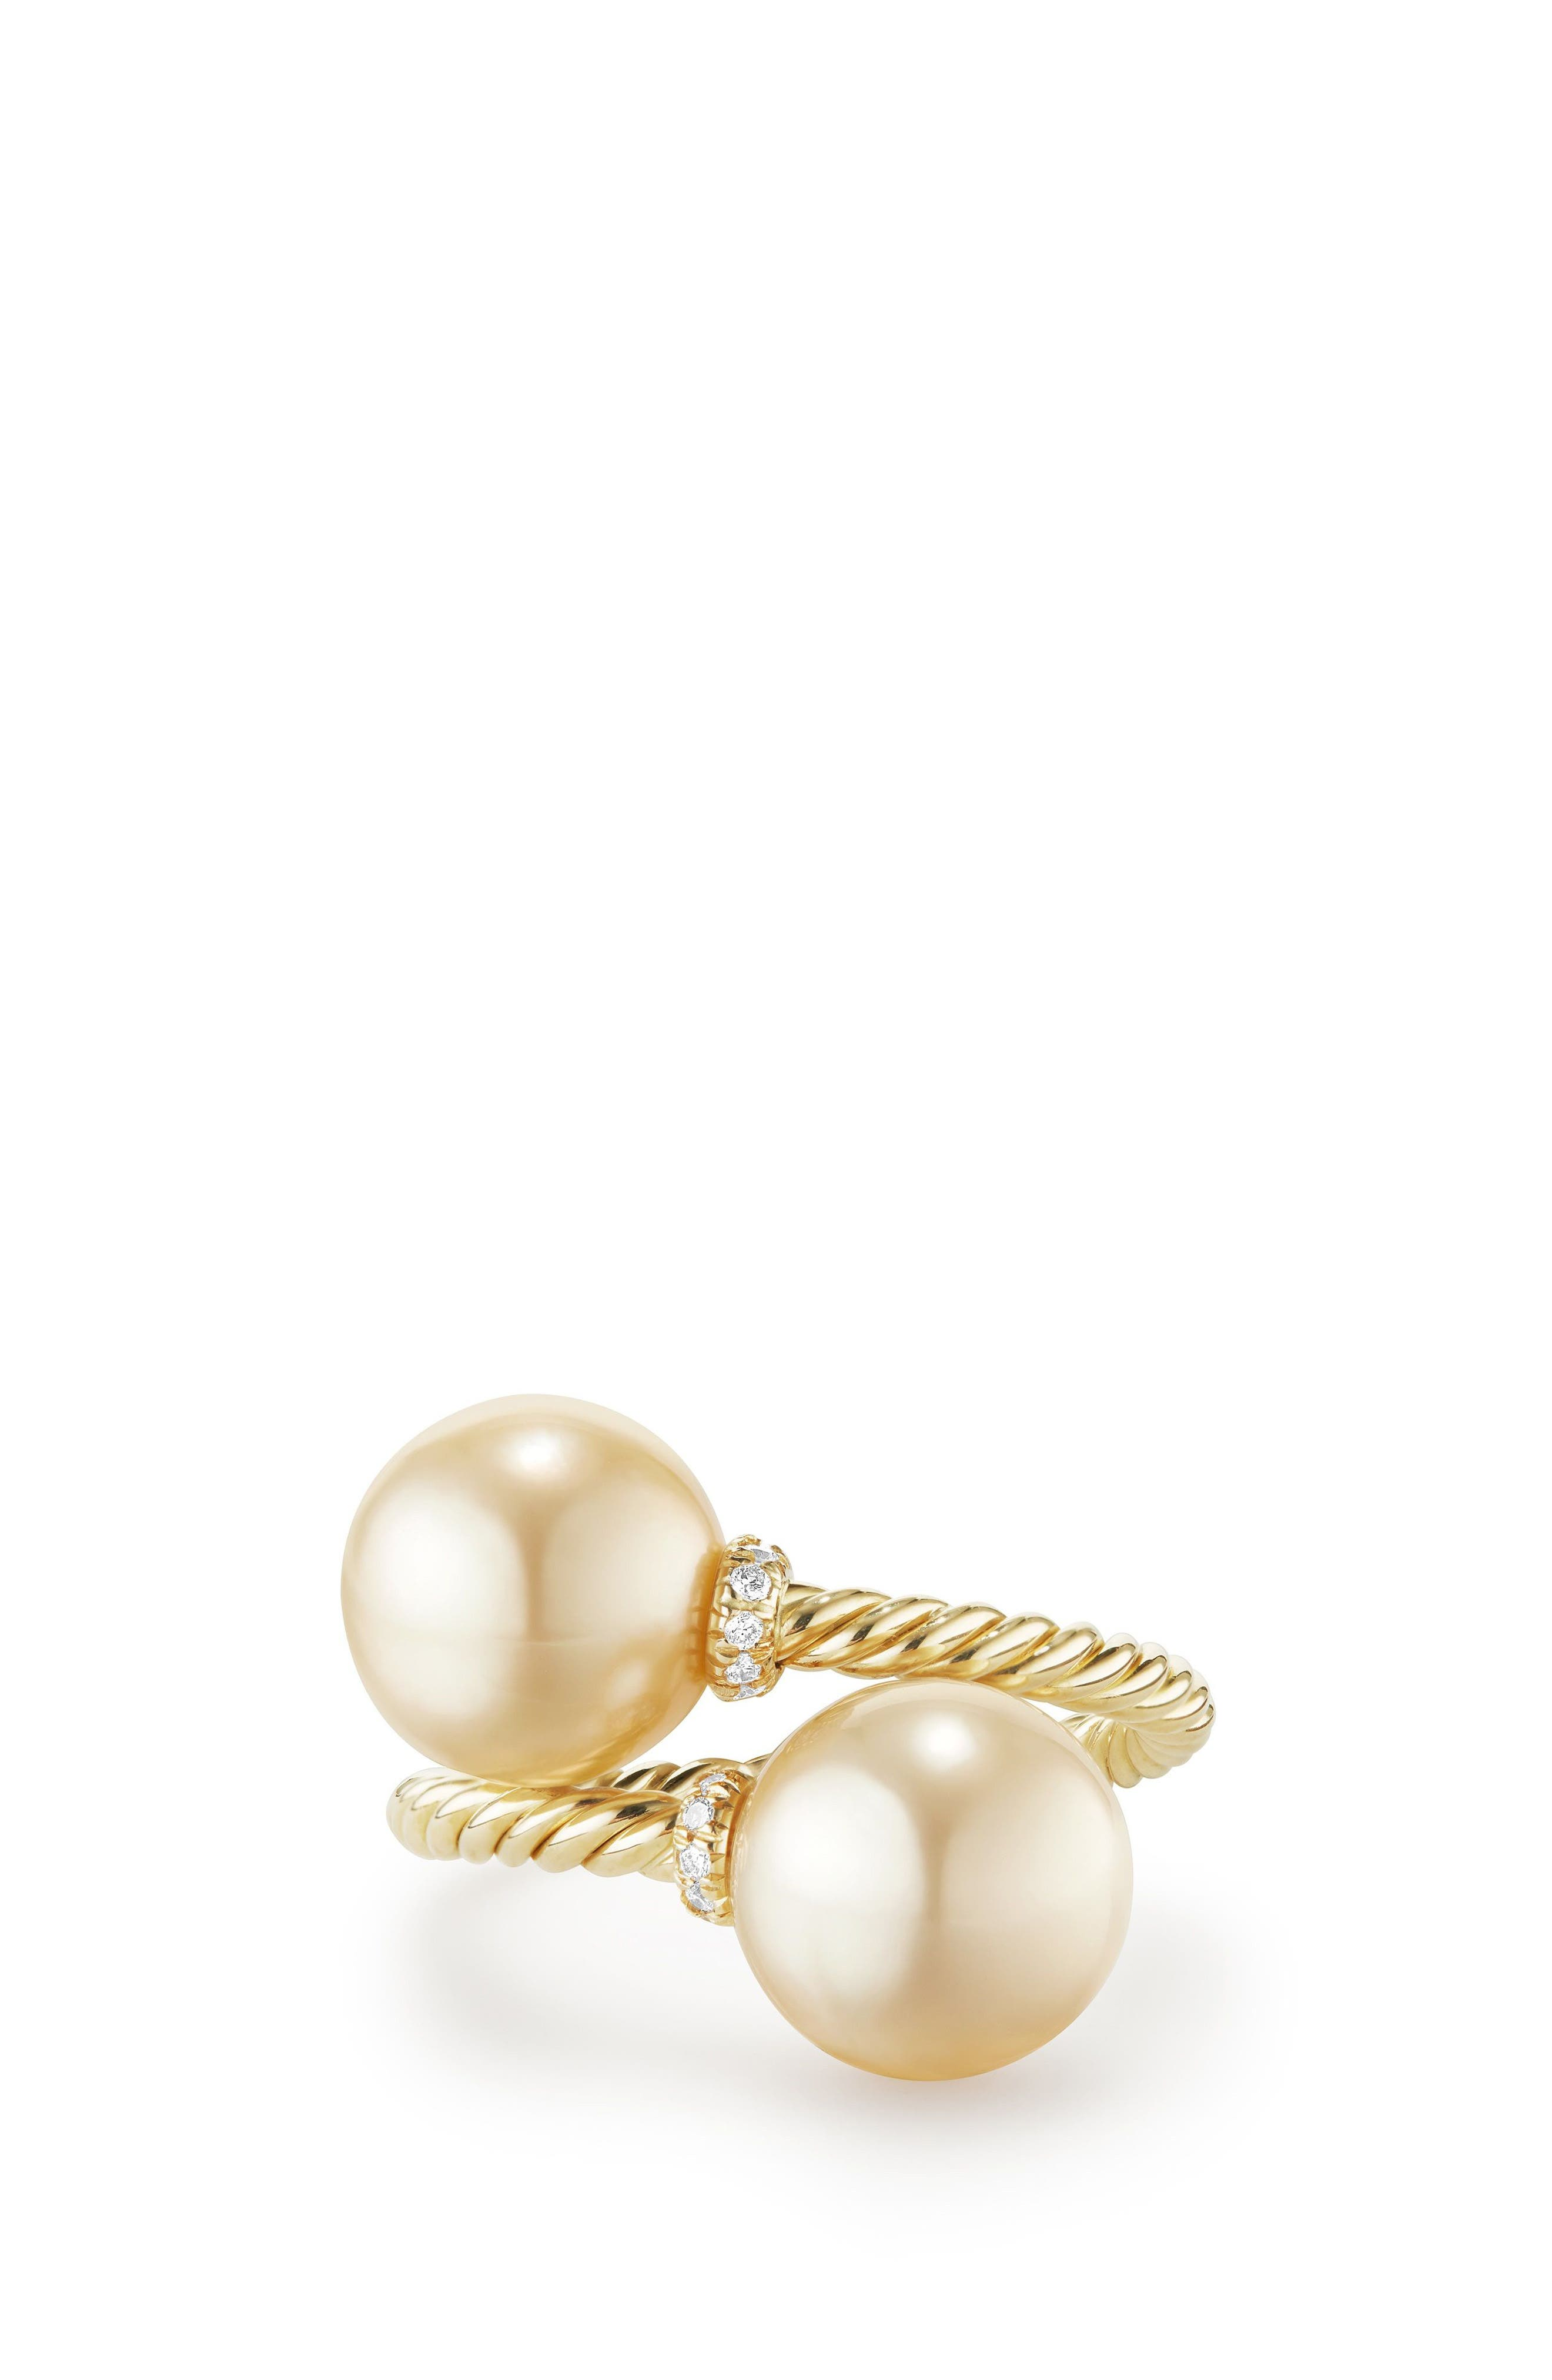 Solari Bypass Ring with Diamond in 18K Gold,                         Main,                         color, Gold/ Diamond/ Yellow Pearl